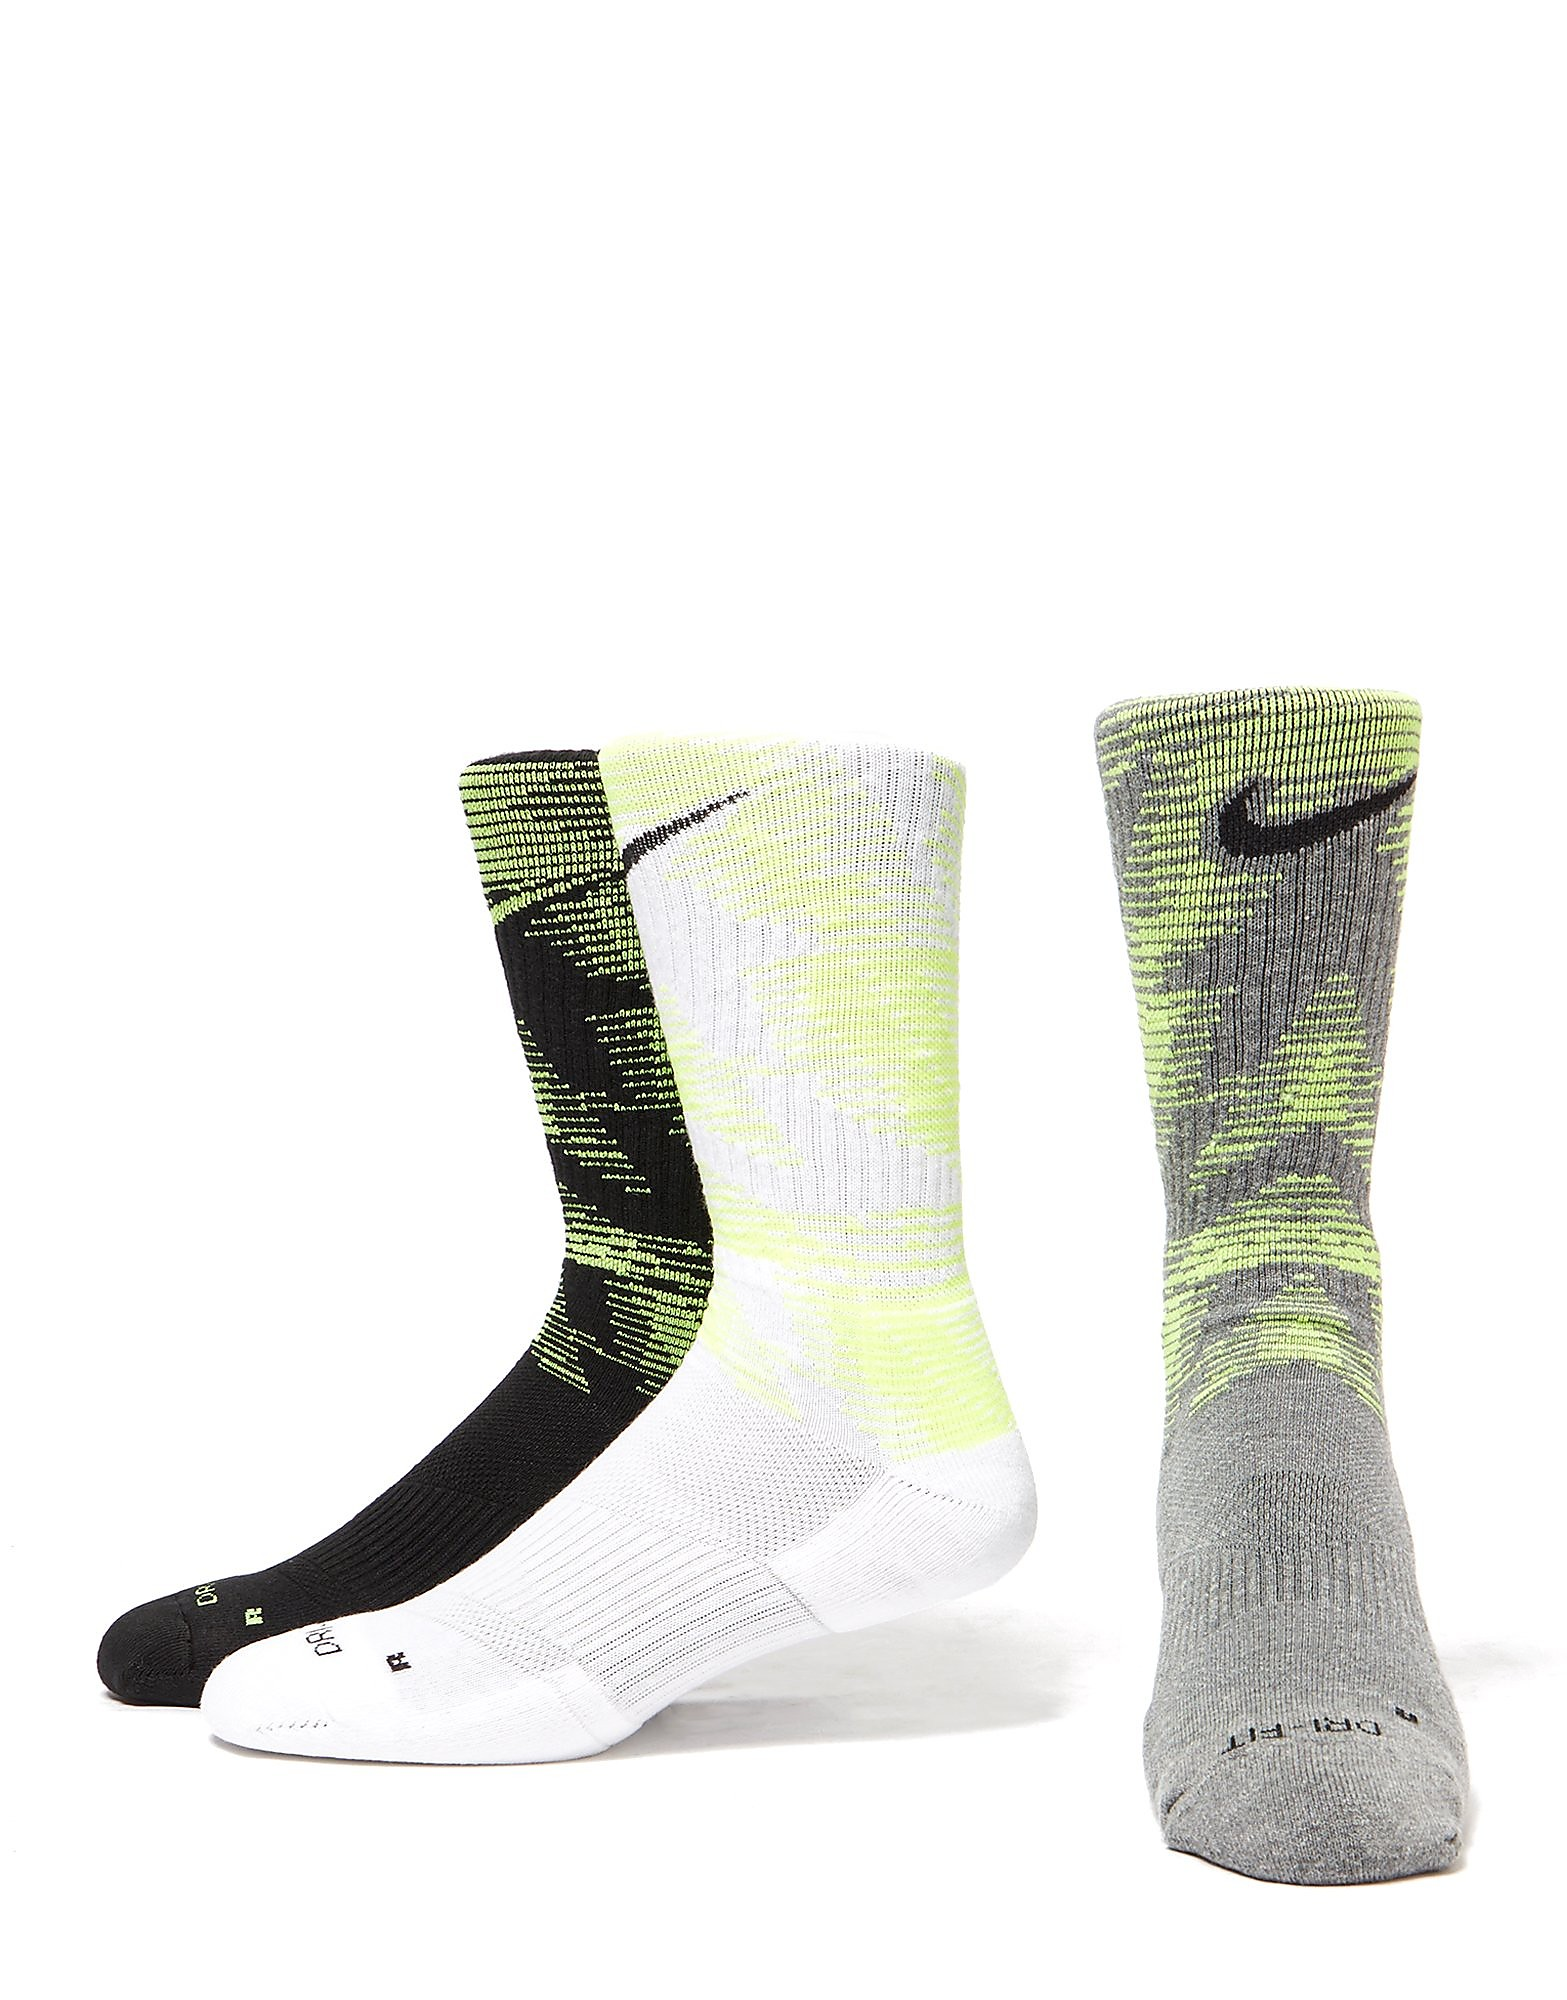 Nike Pack de 3 calcetines Dri-FIT